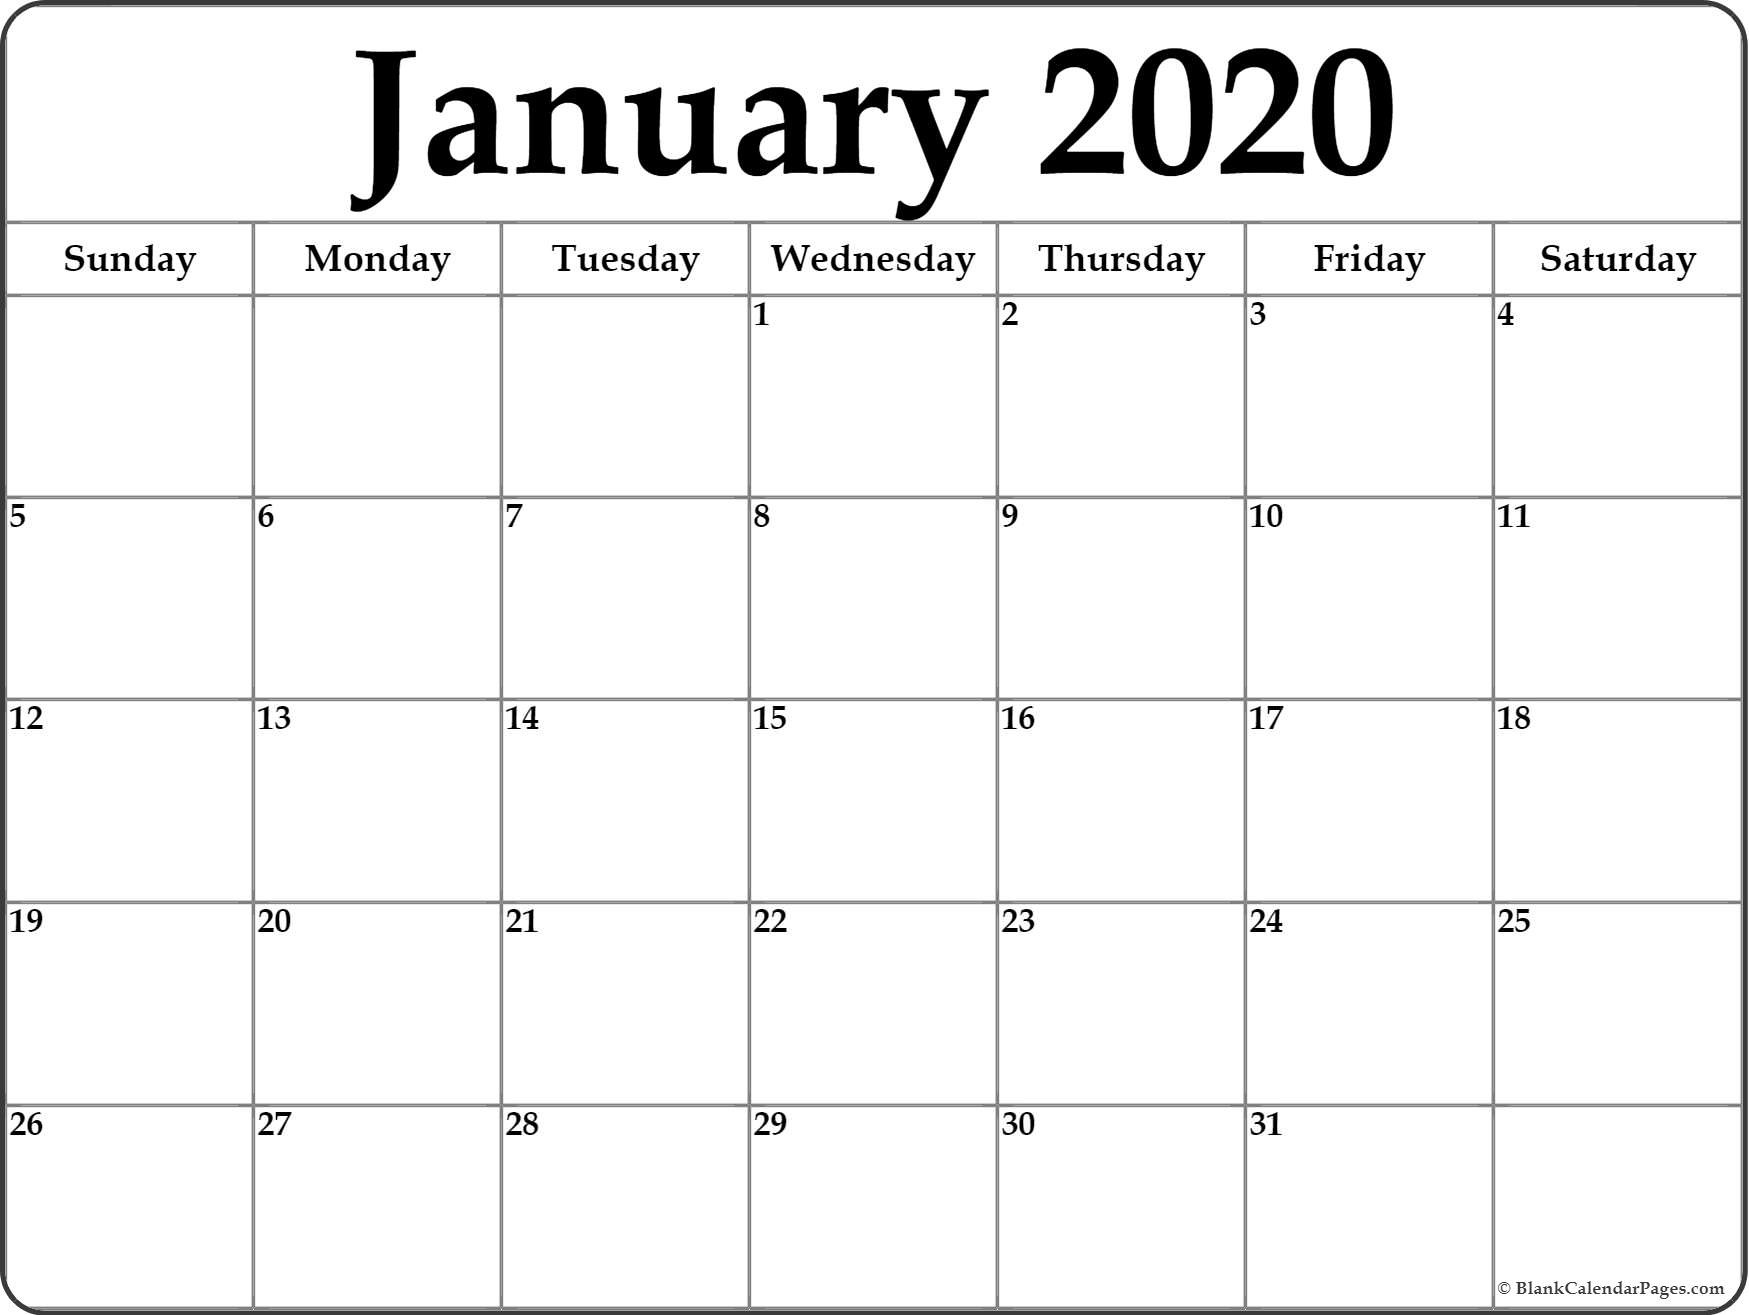 Free Printable Calendar 2020 Monthly - Wpa.wpart.co-Printable Bill Calendar 2020 Monthly